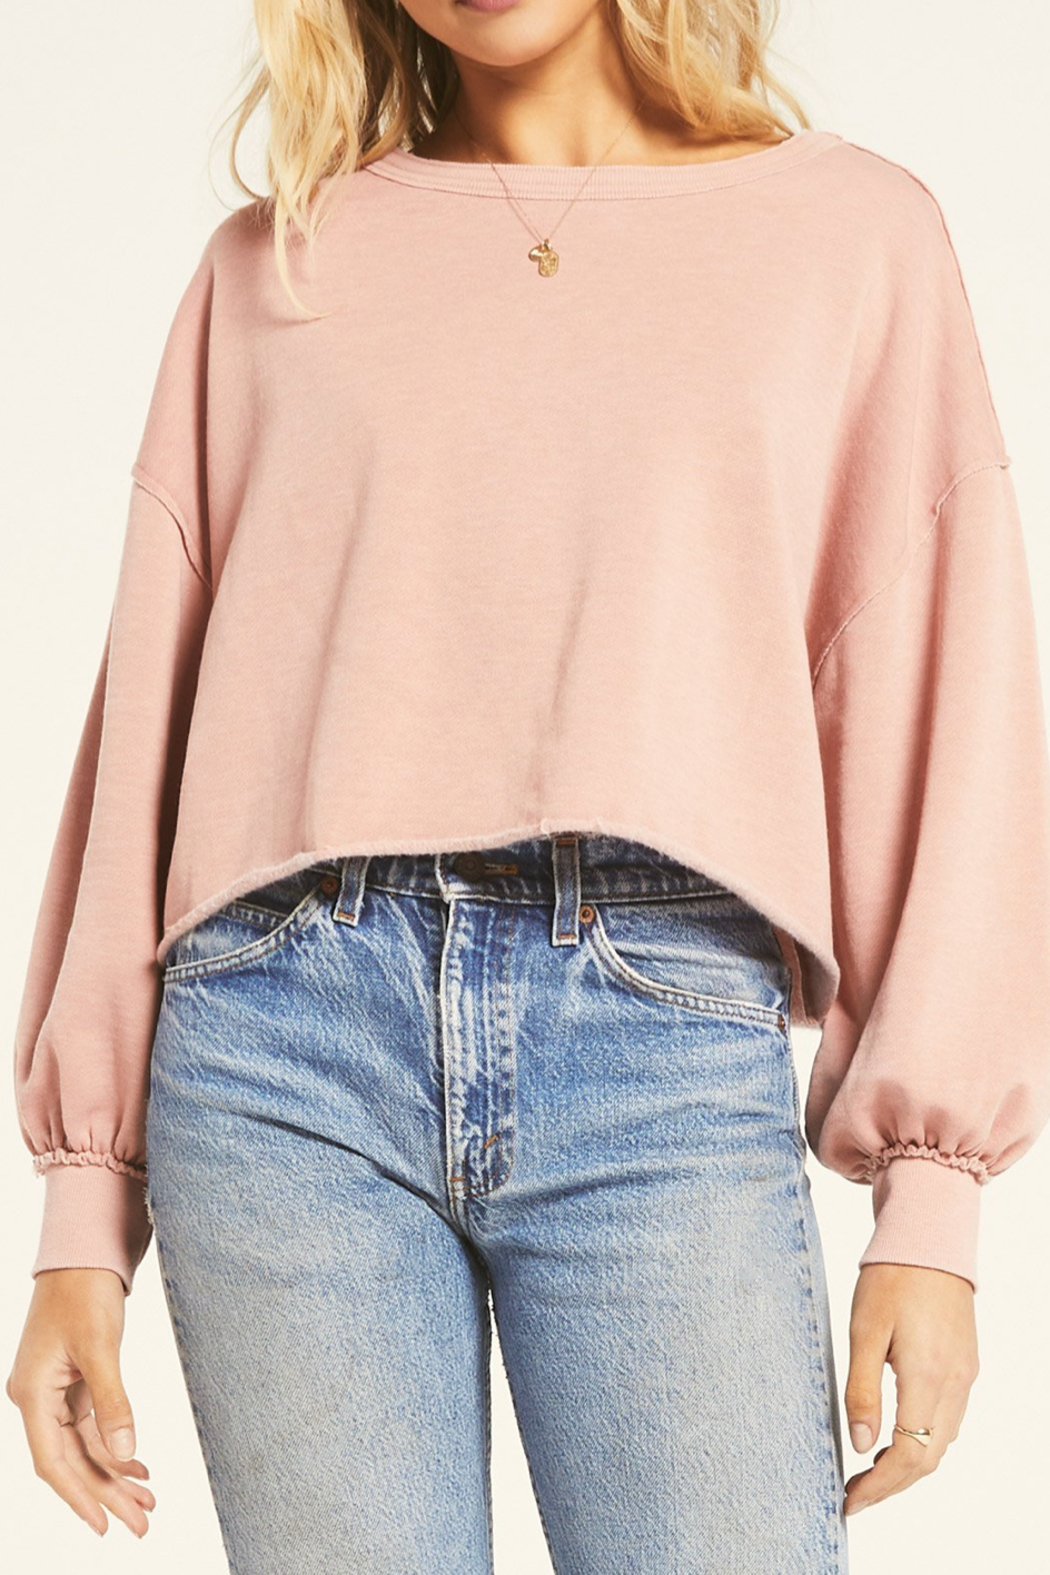 Z Supply  Pink Cropped Sweatshirt - Main Image